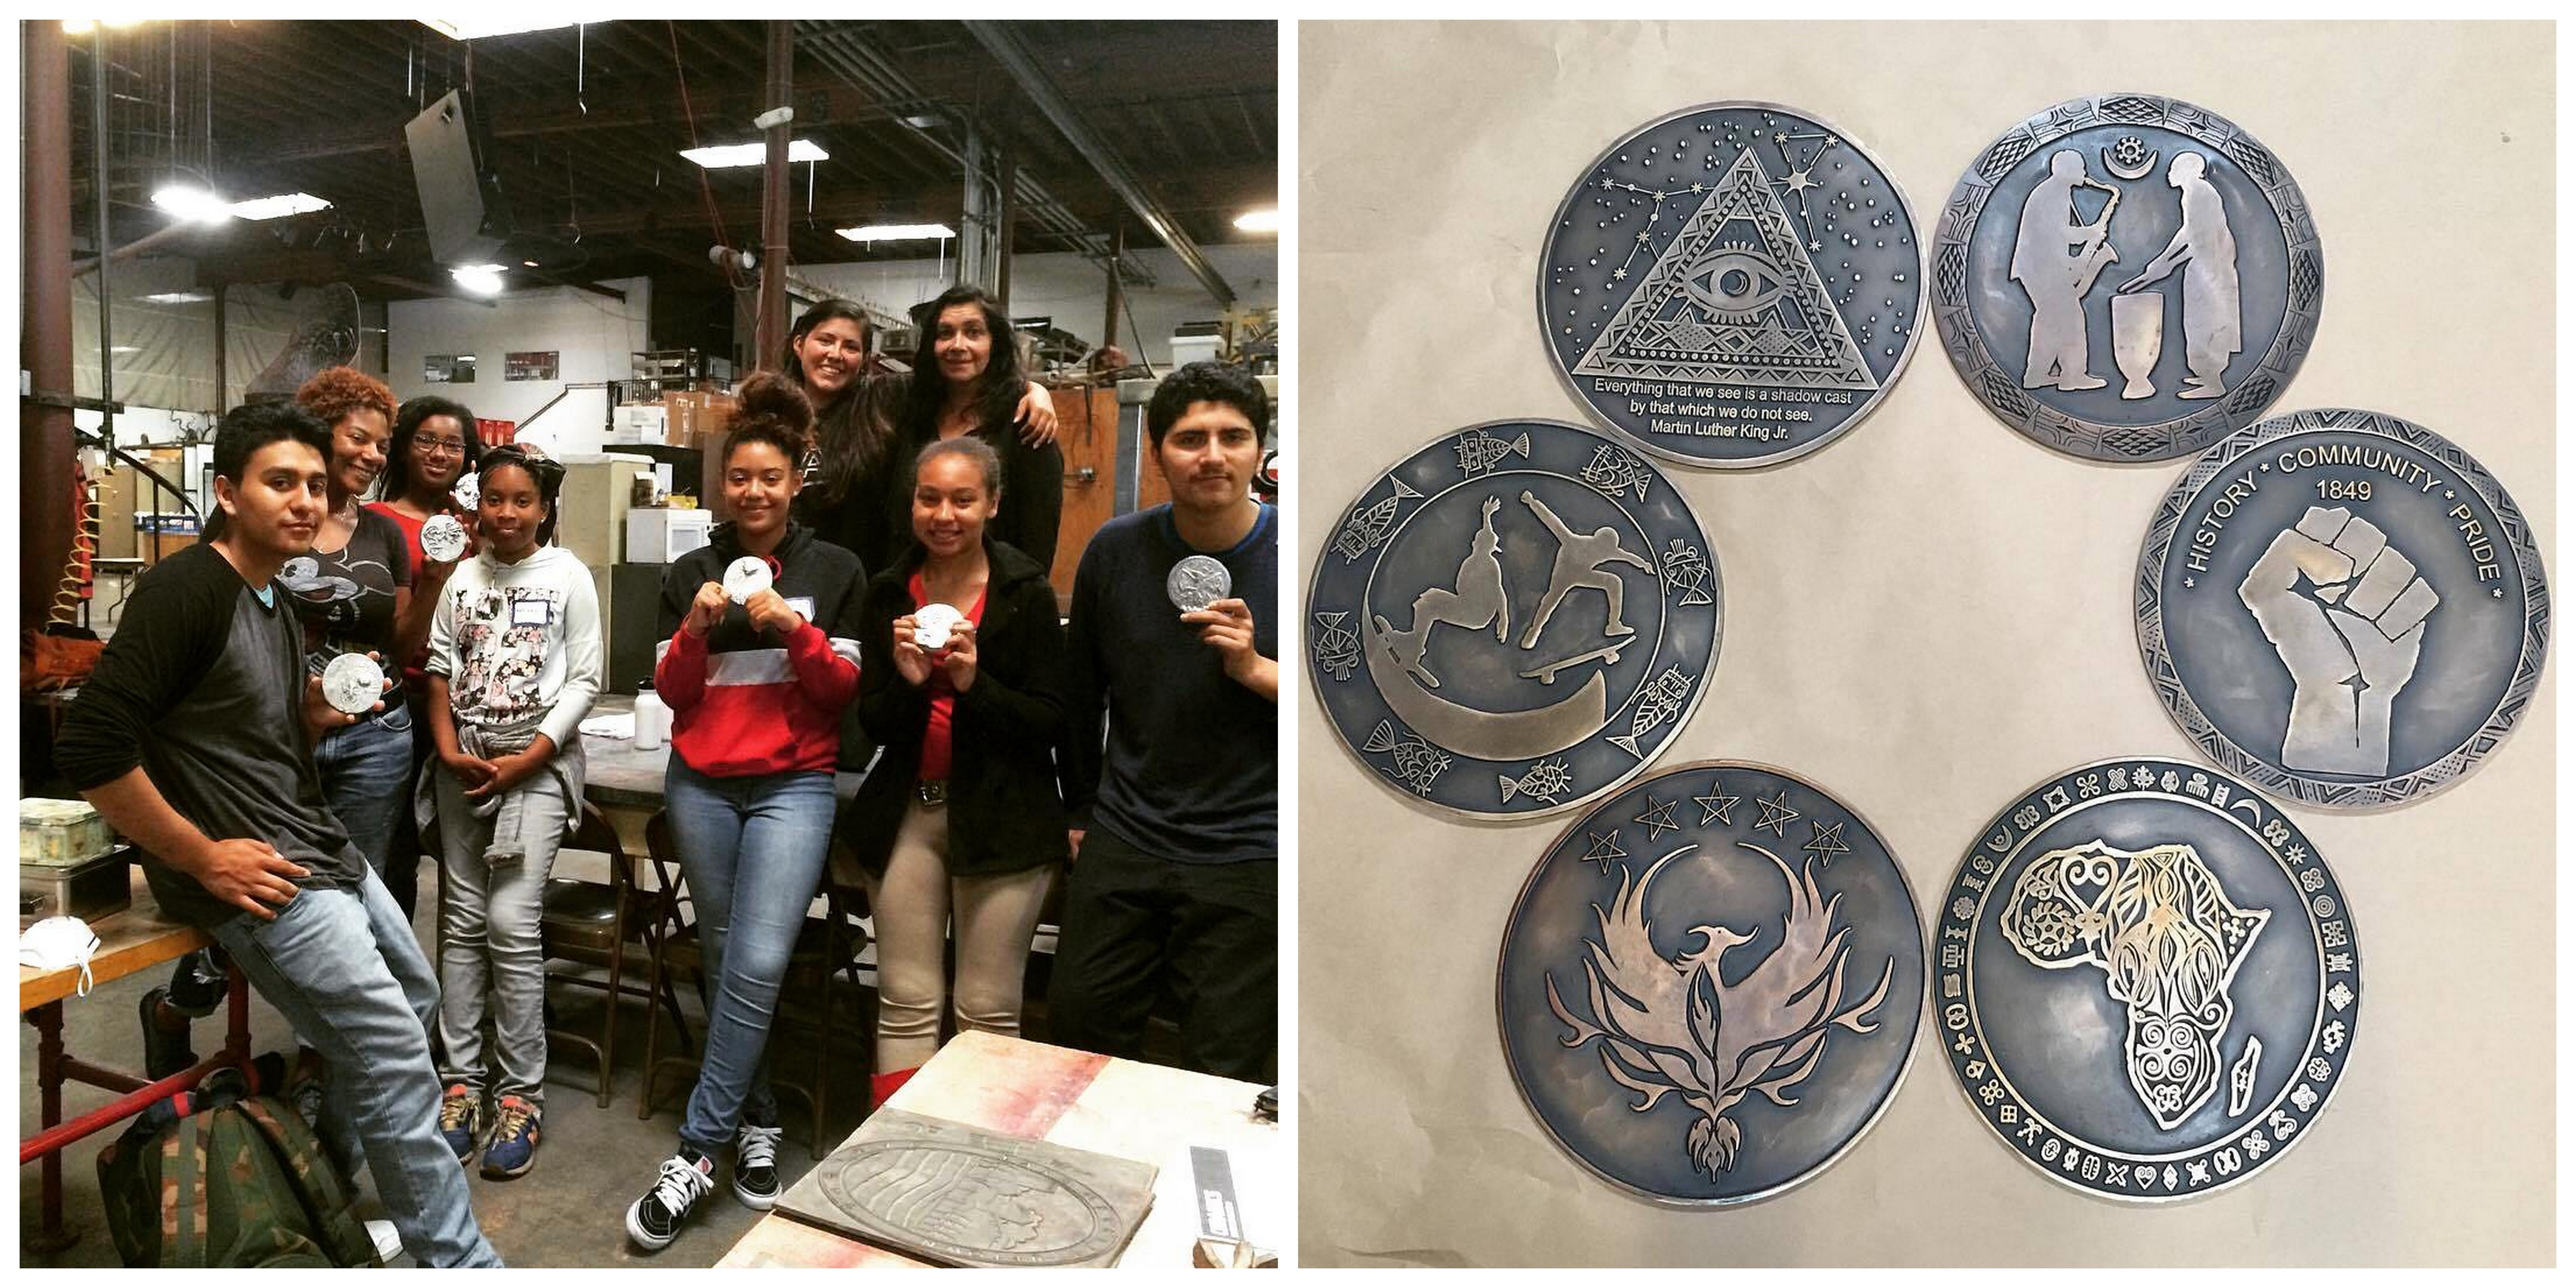 Students in the metalworking class and their finished medallions